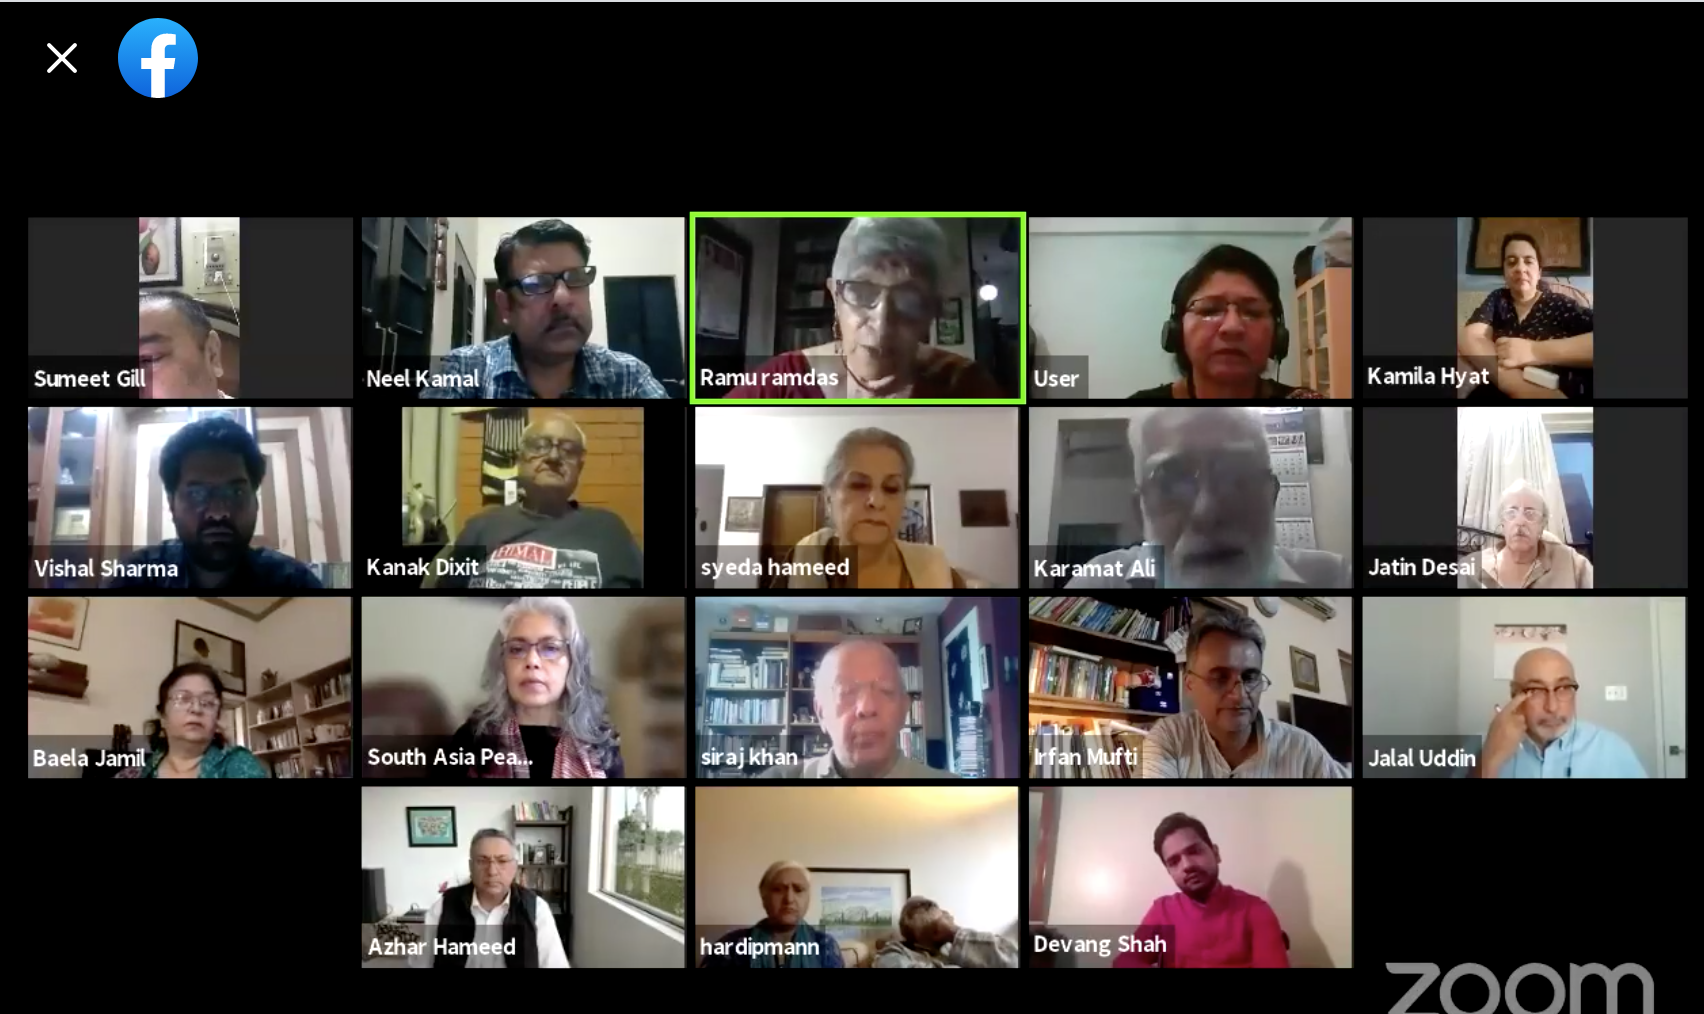 'Fighting Covid-19 requires empathy and cooperation' –  South Asia Peace Action Network